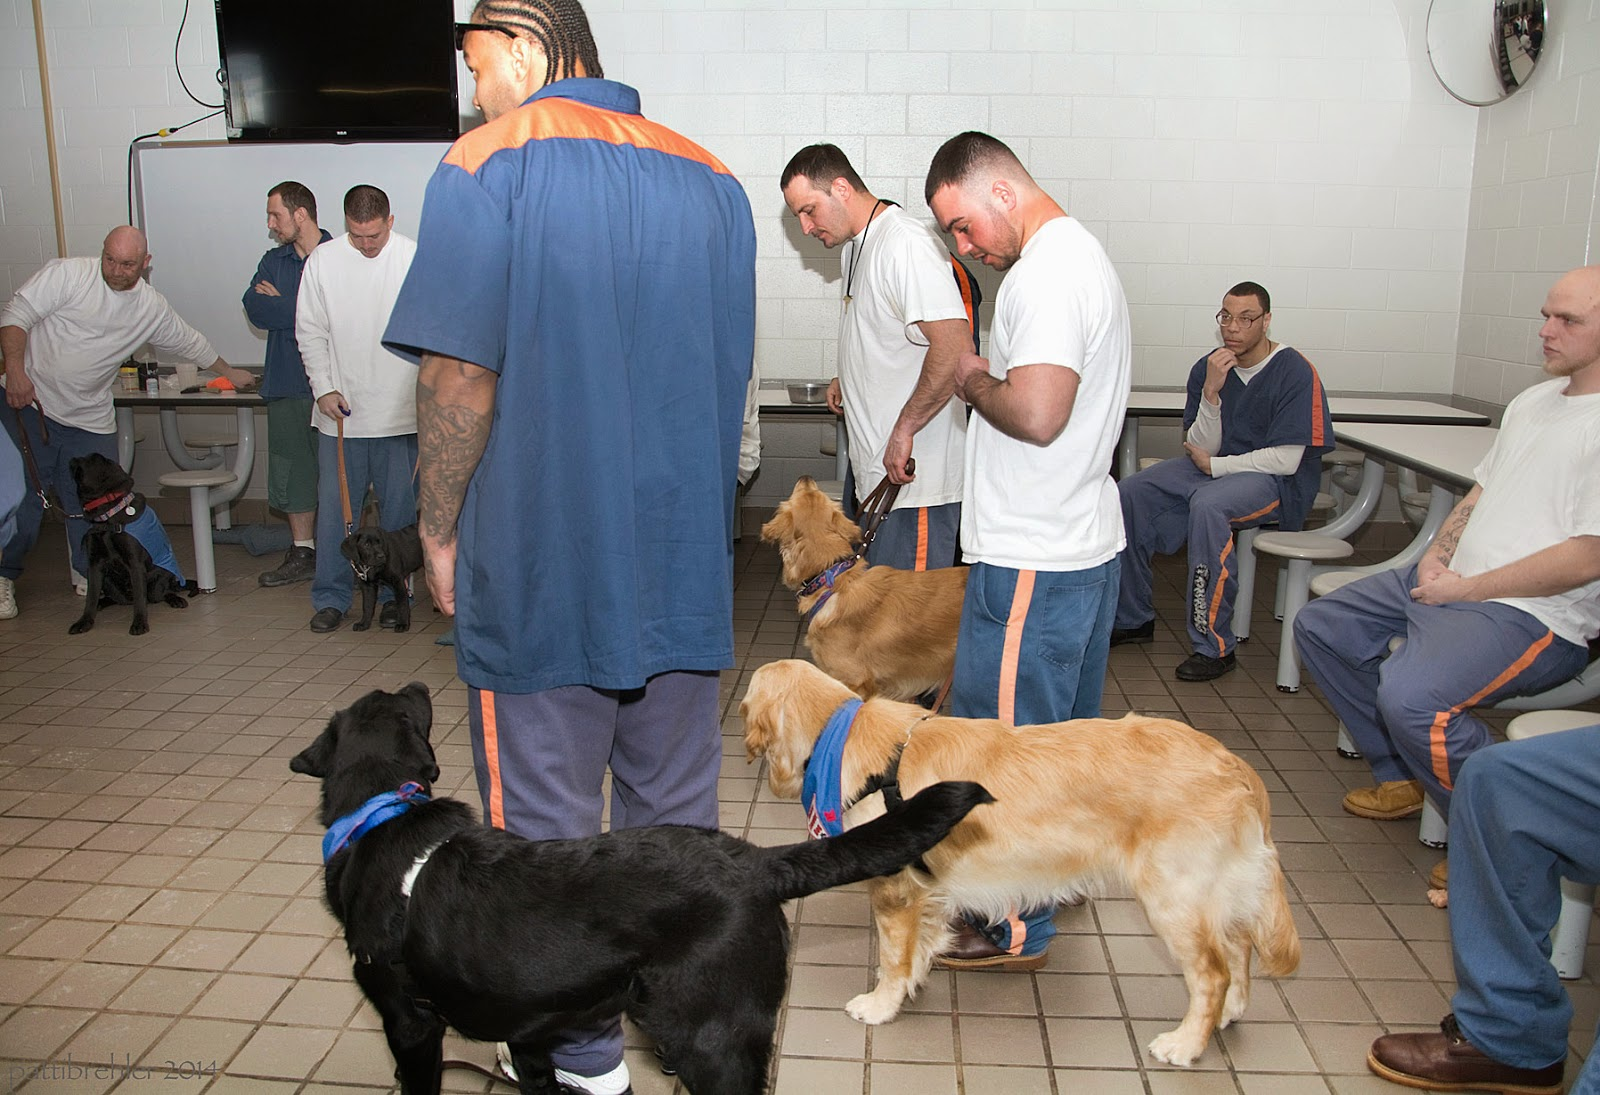 Now the three dogs are standing next to their handlers. The black lab is looking up his handler, as is the furthers golden. the middle golden is just looking ahead. In this shot you can see three men in the background on the left with smaller black labs, one is sitting and the other is down. There are two men sitting on the right side. A large black TV screen is hanging on the far wall in the background.